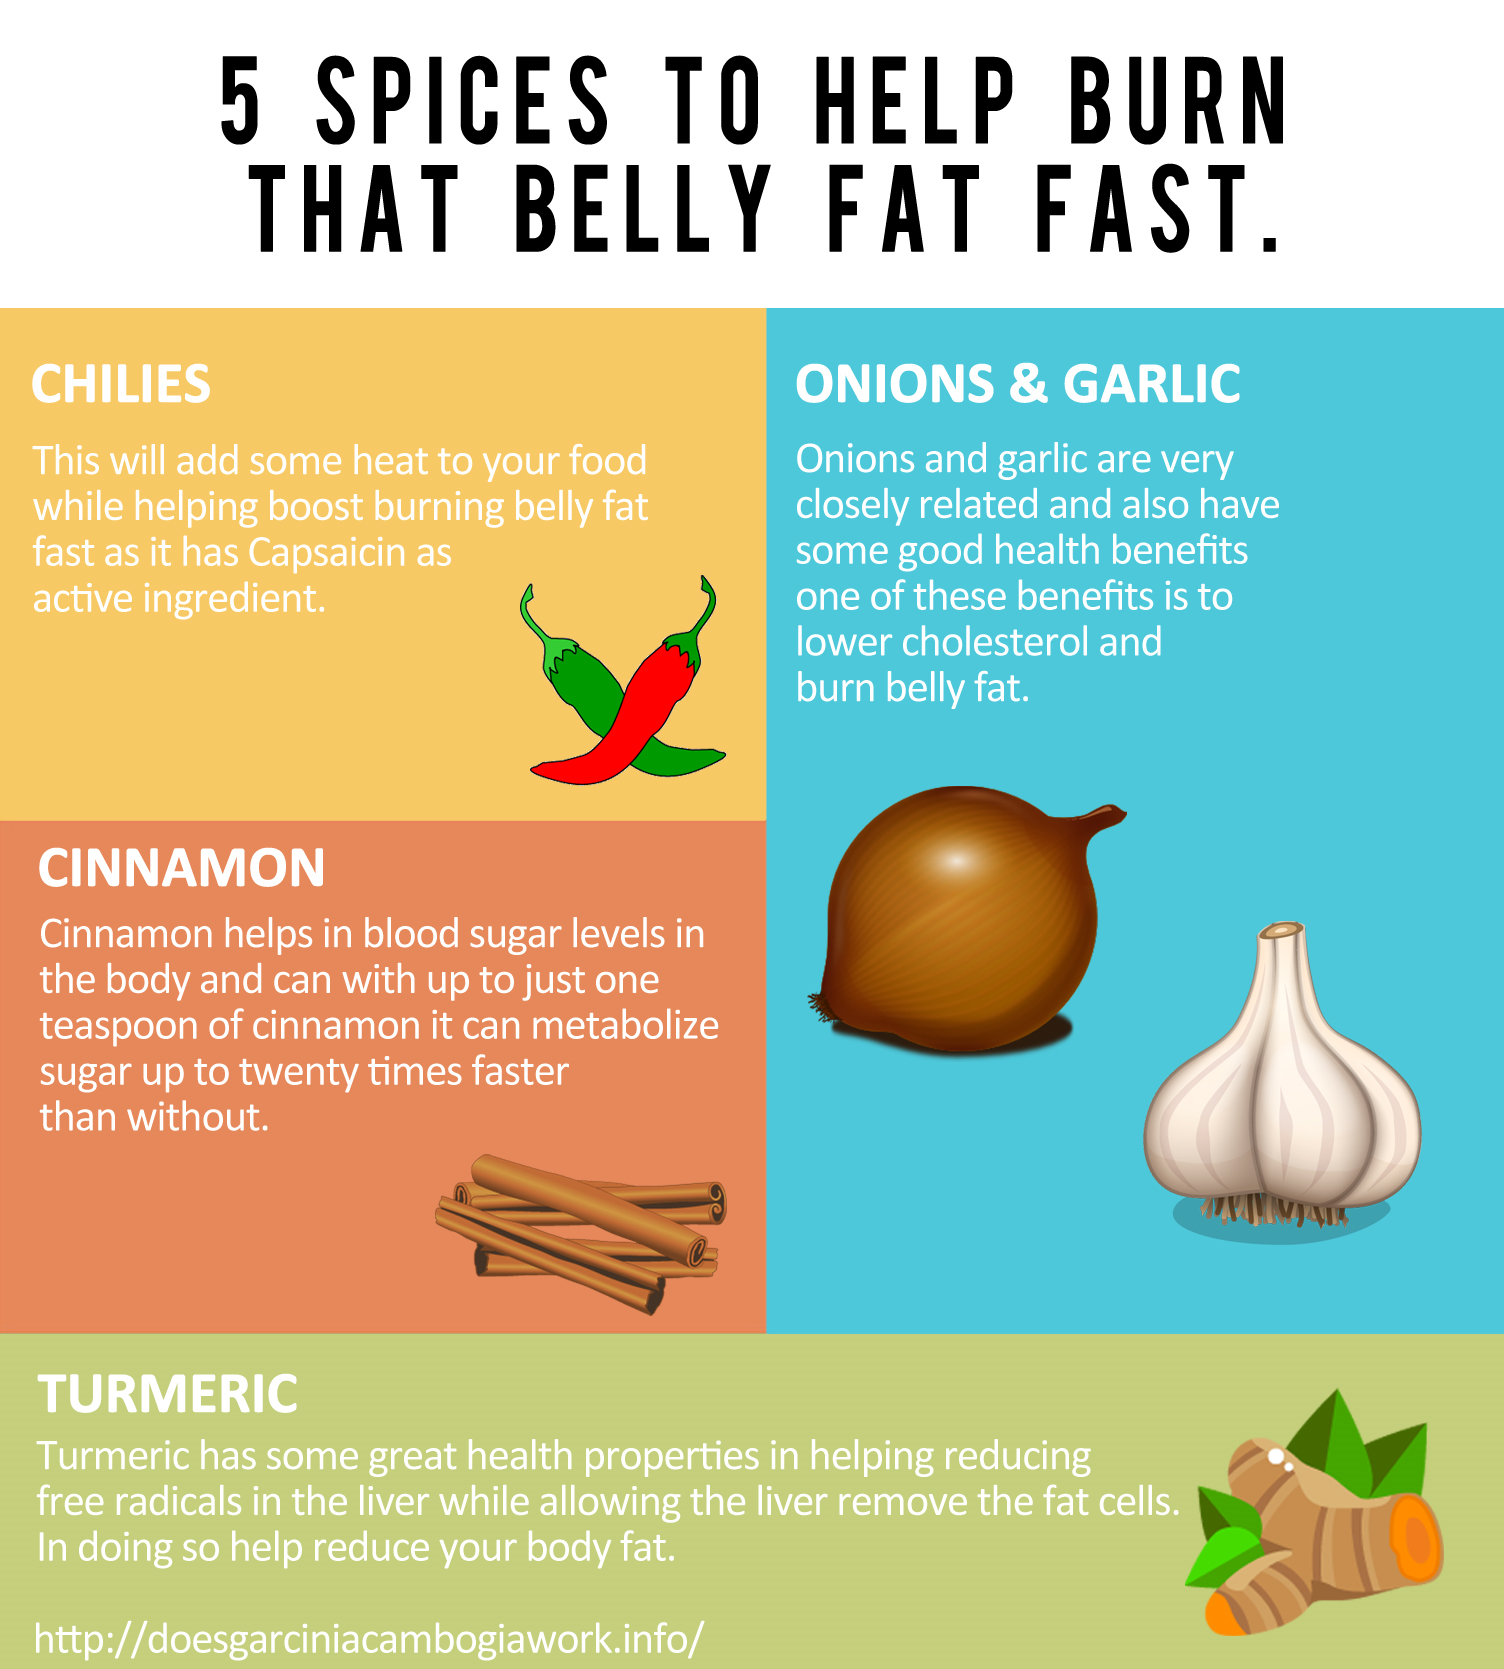 5 Spices That Help To Burn That Belly Fat Fast #infographic